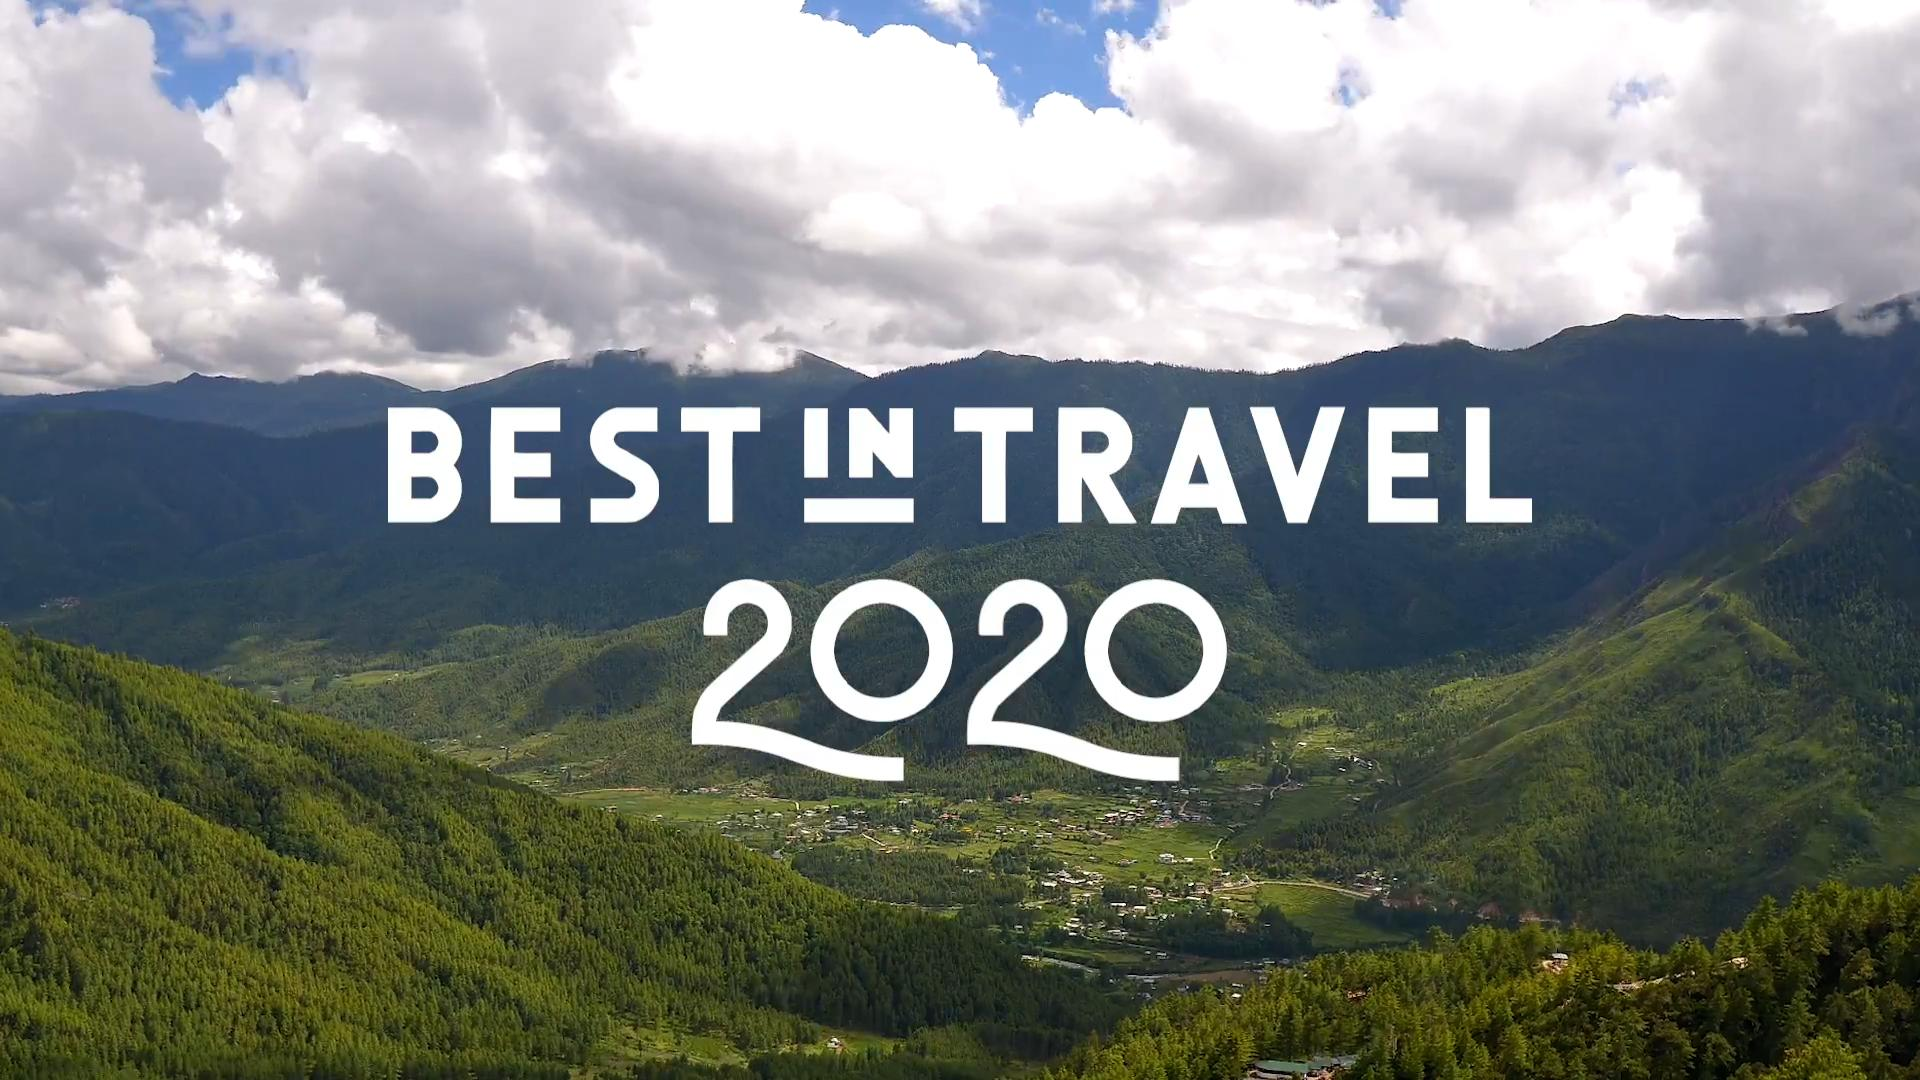 Best Photos Of 2020.The Best Destinations To Visit In 2020 Lonely Planet Video